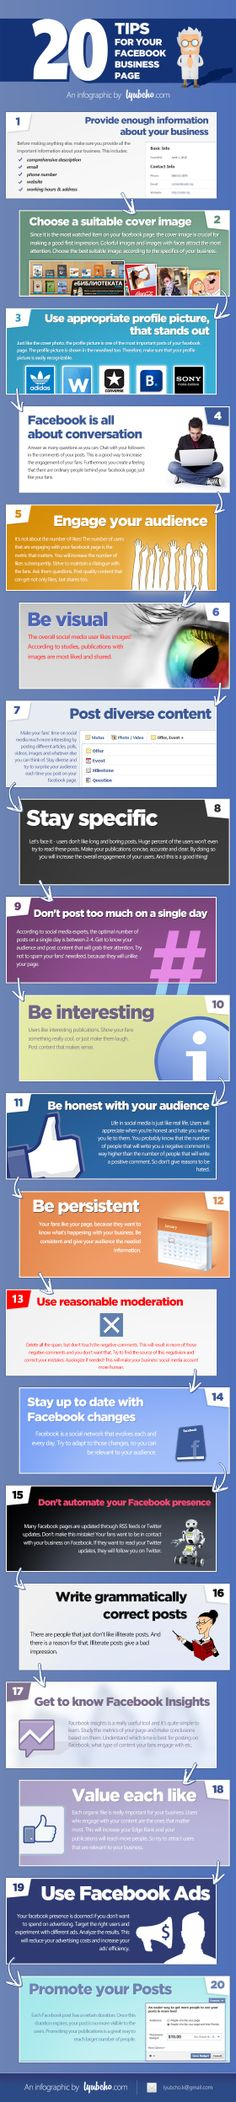 20 tips for your FaceBook business page #infografia #infographic #socialmedia